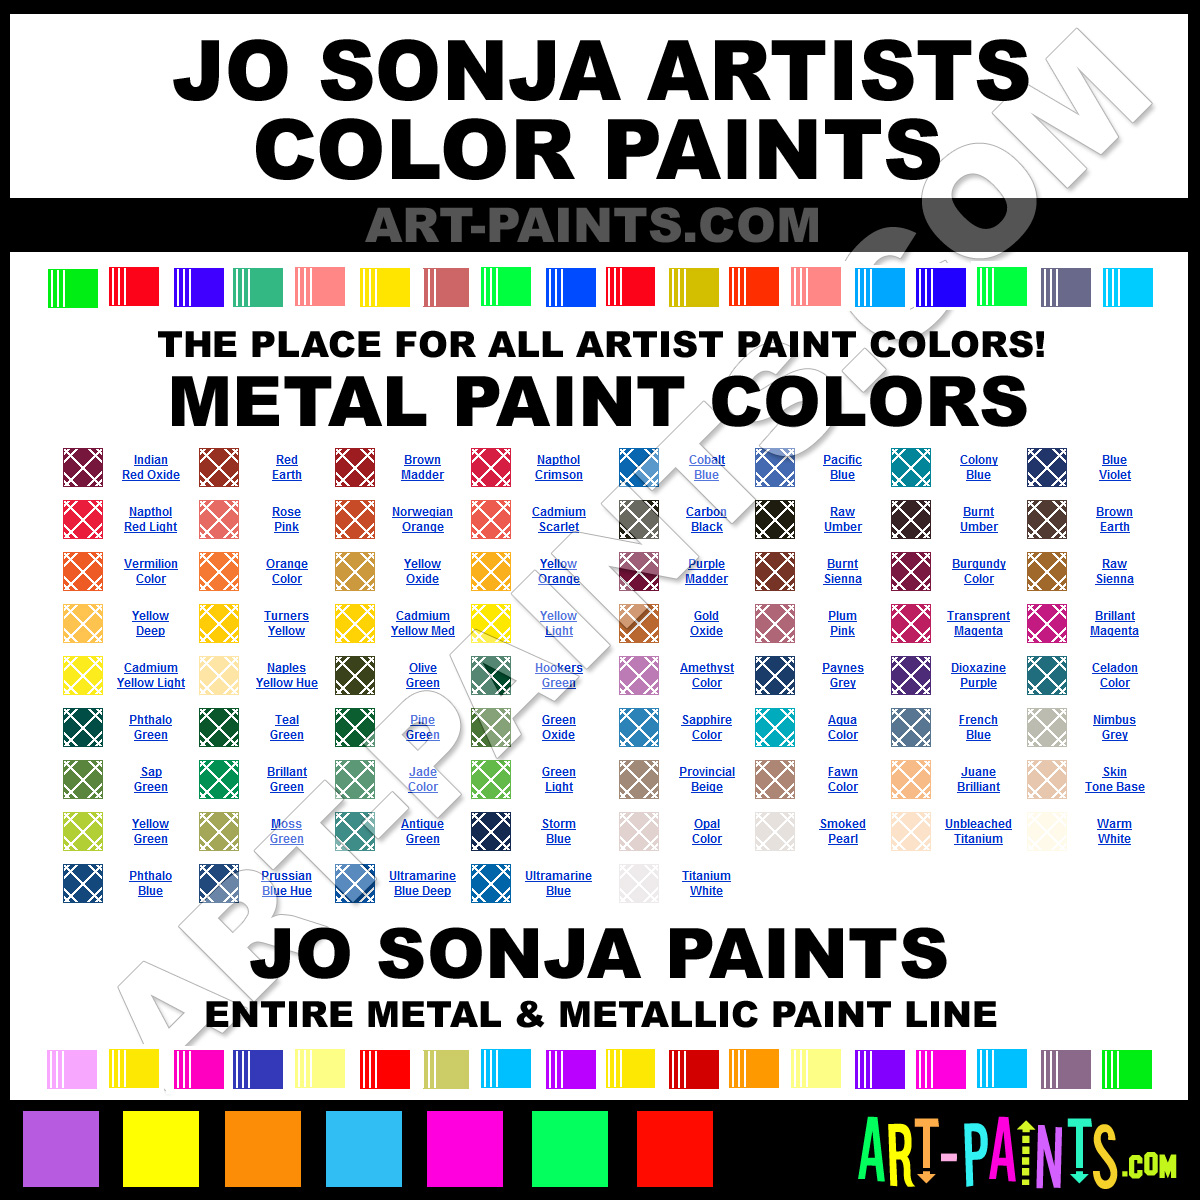 Jo Sonja Artists Colors Metal Paint Colors Metallic